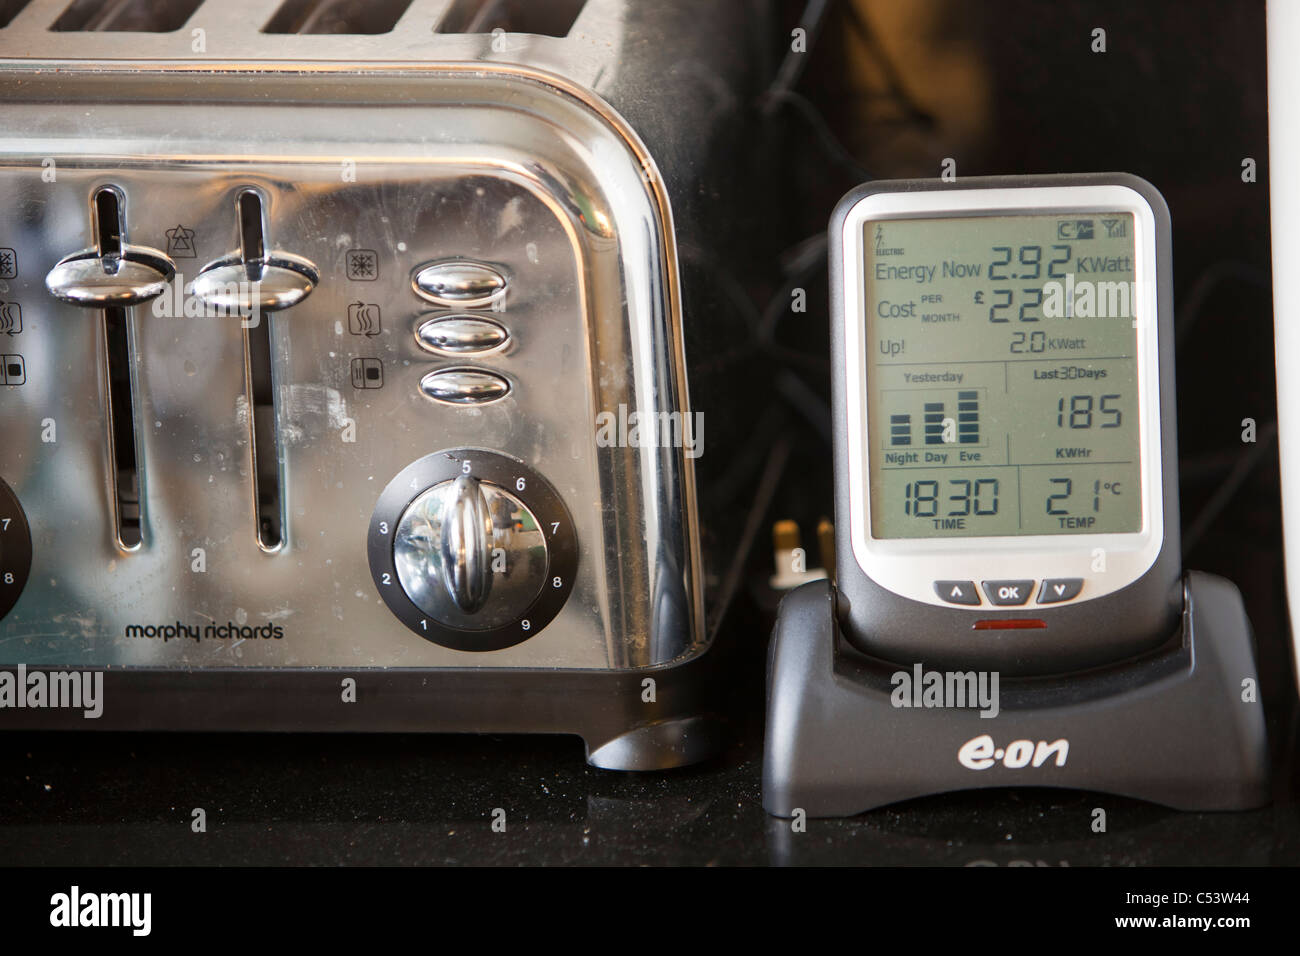 A smart meter for monitoring electricity consumption - Stock Image